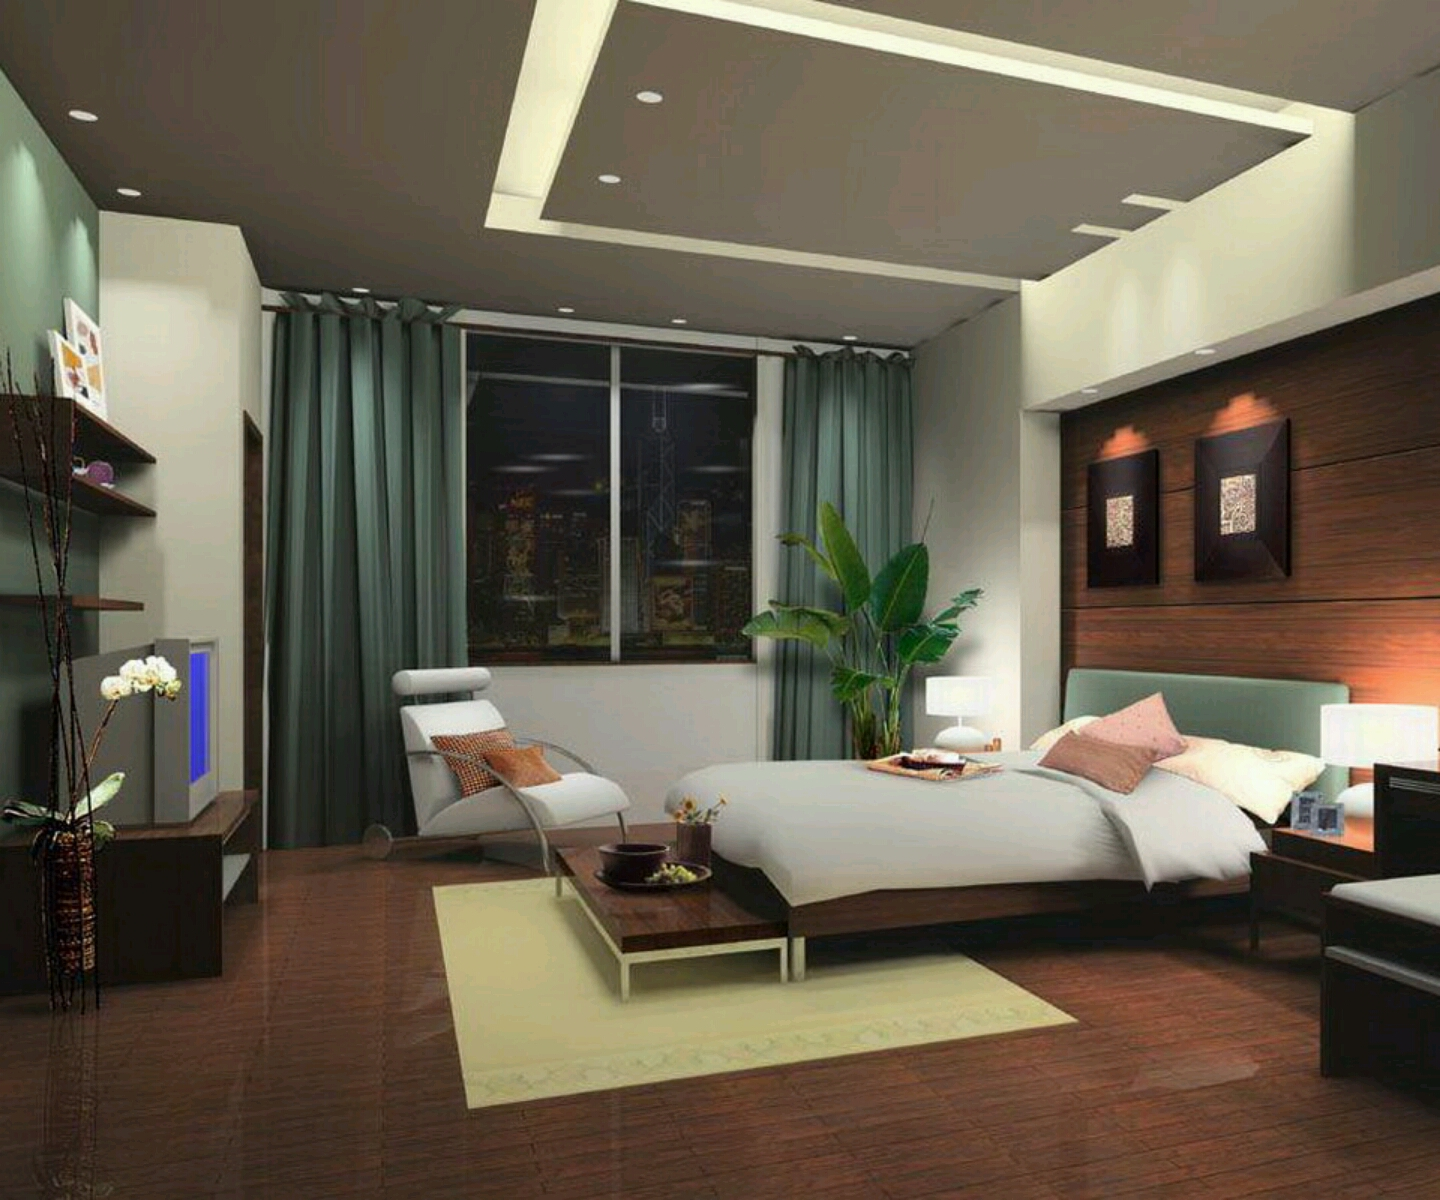 New home designs latest modern bedrooms designs best ideas for Home design bedroom ideas